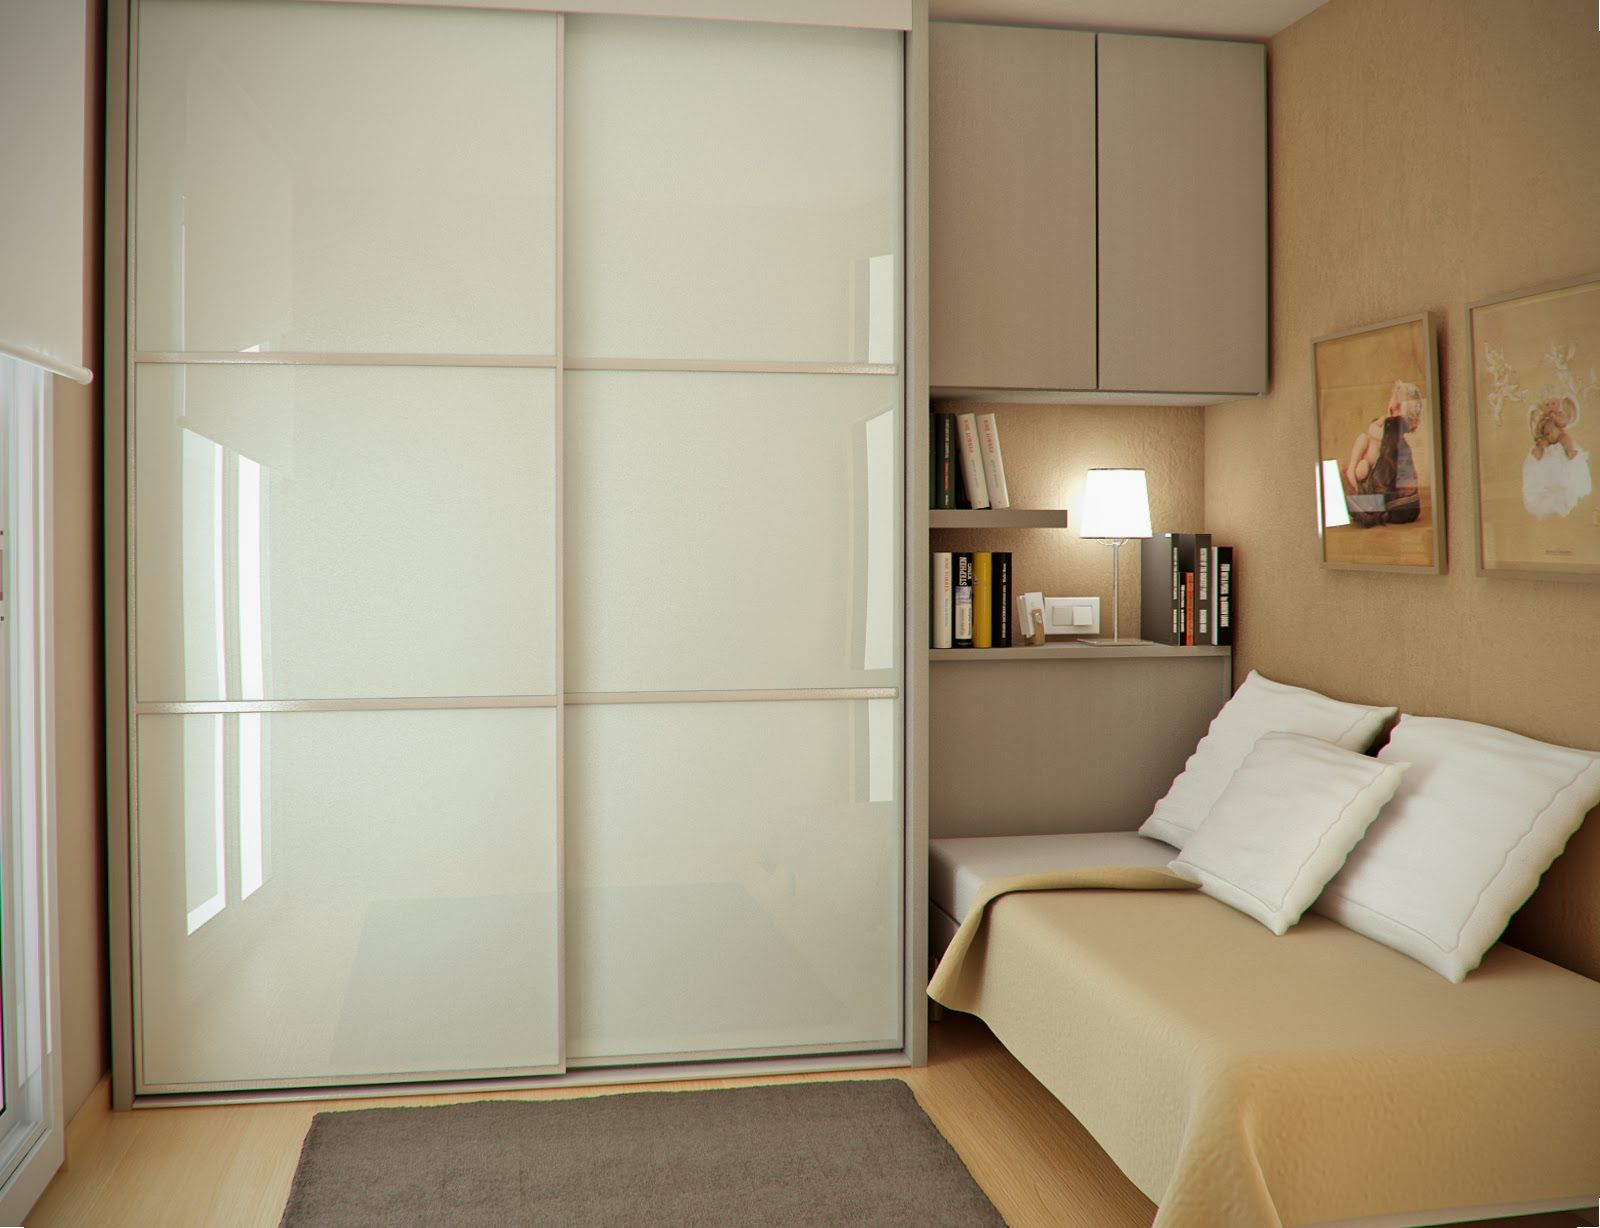 Wardrobe Design For Small Room